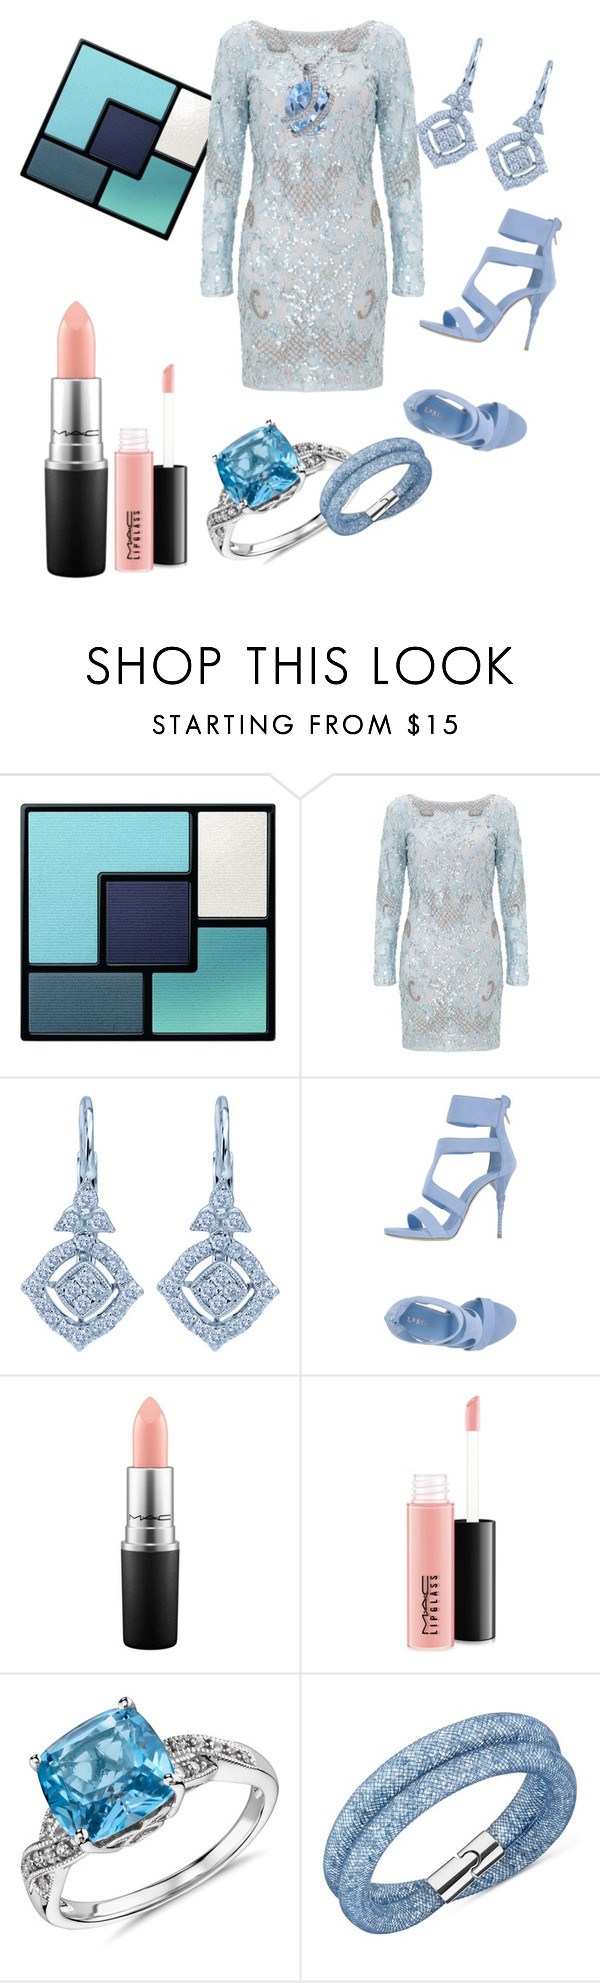 """Frost Blue"" by lindadrotner ❤ liked on Polyvore featuring Yves Saint Laurent, Aidan Mattox, Le Silla, MAC Cosmetics, Blue Nile, Swarovski, Miadora, women's clothing, women's fashion and women"